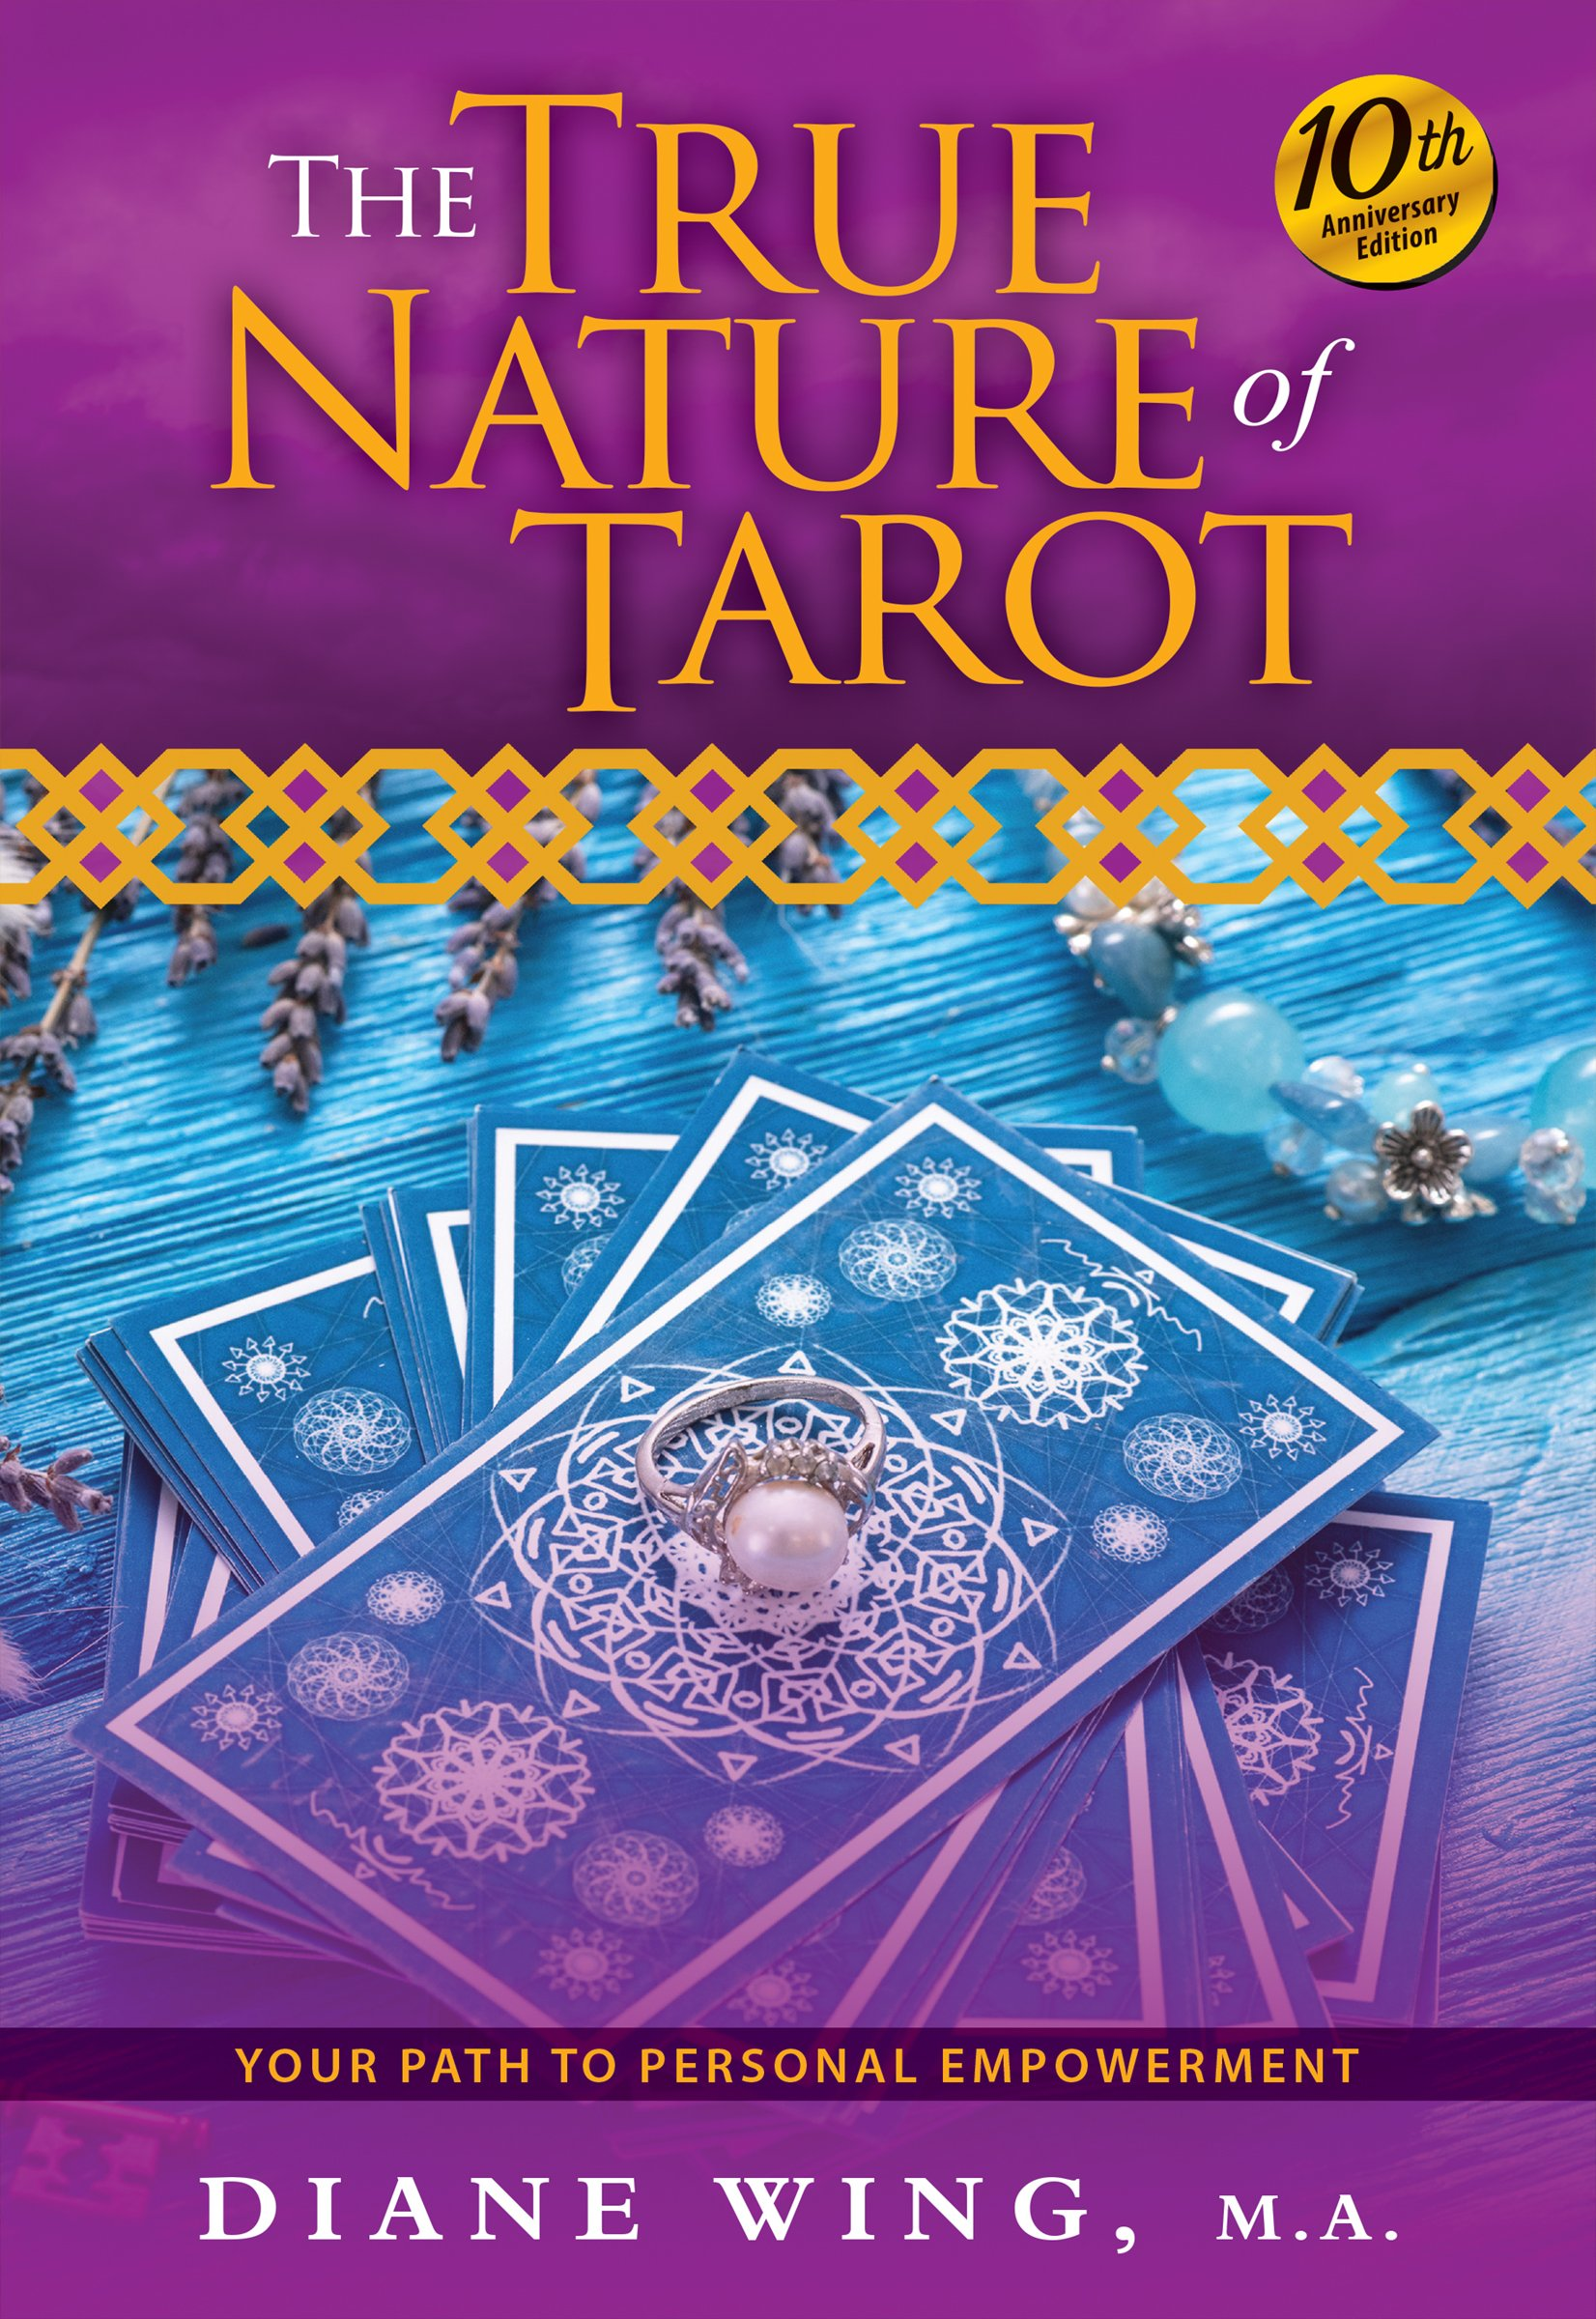 The True Nature of Tarot, 10th Anniversary Edition - by Diane Wing